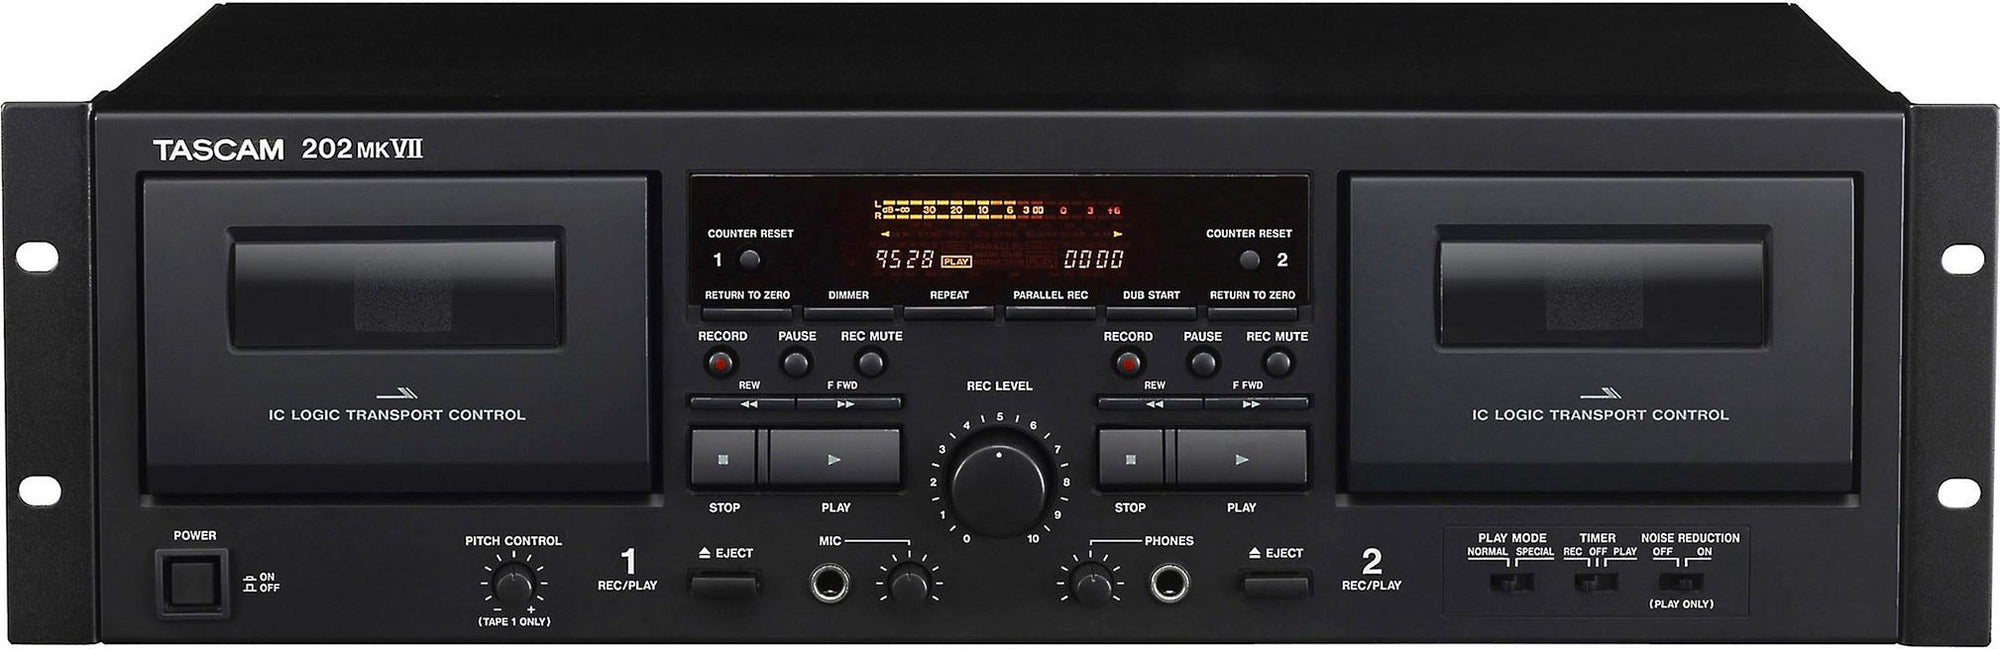 Tascam 202 MK VII Double Cassette Deck (with USB)